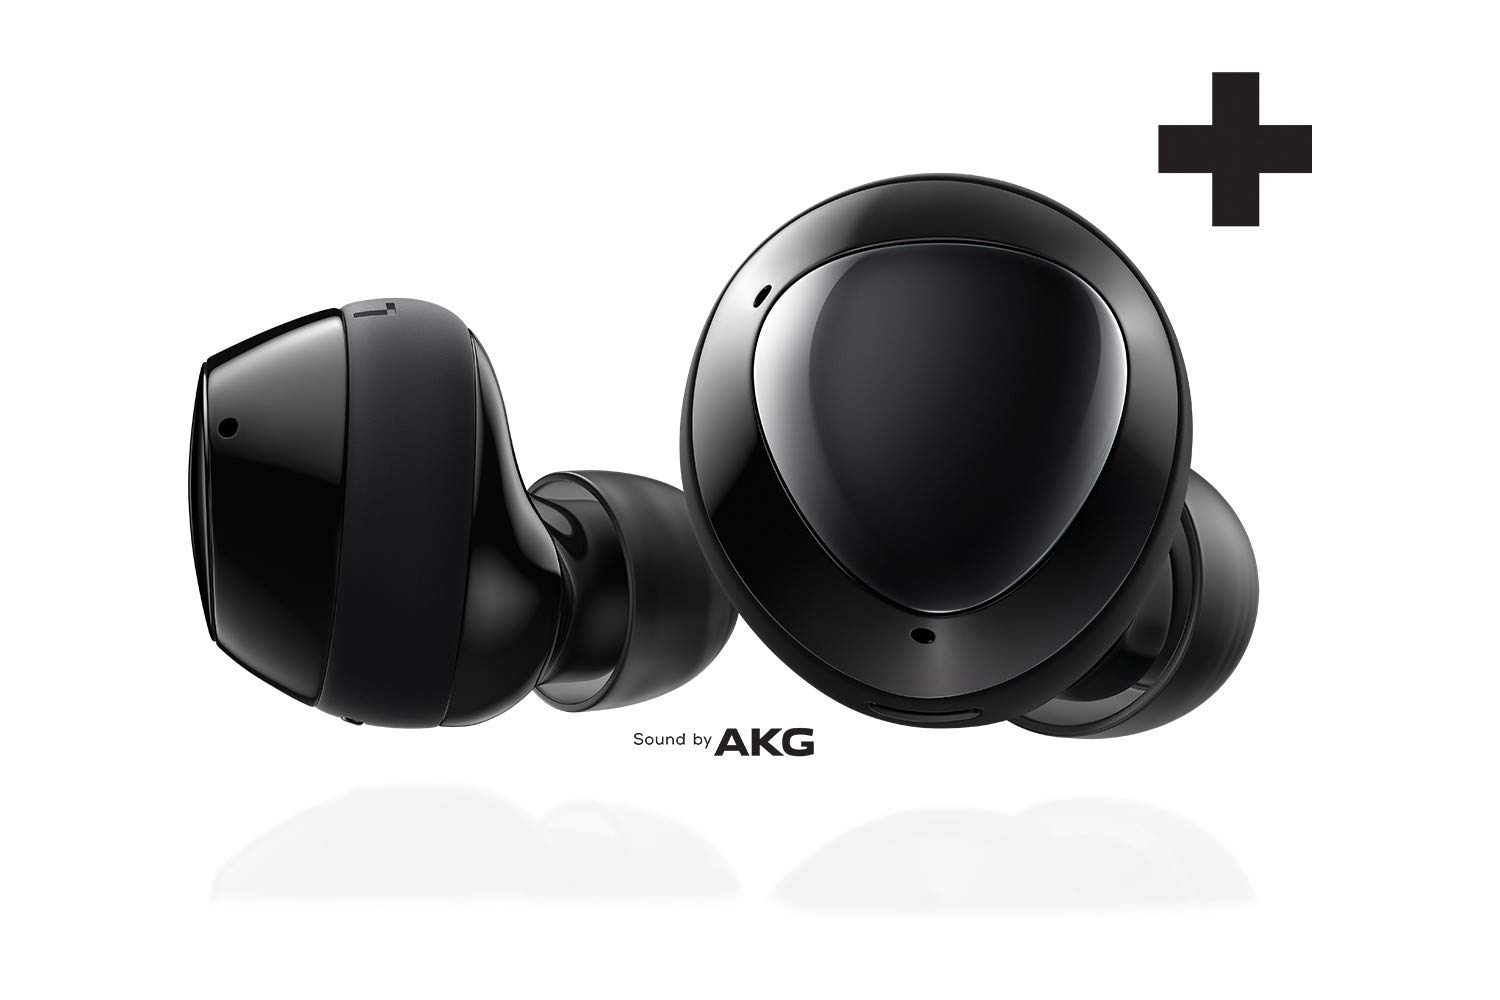 samsung-galaxy-buds-plus-true-wireless-earbuds-wimproved-battery-and-call-quality-wireless-charging-case-included-black-us-version